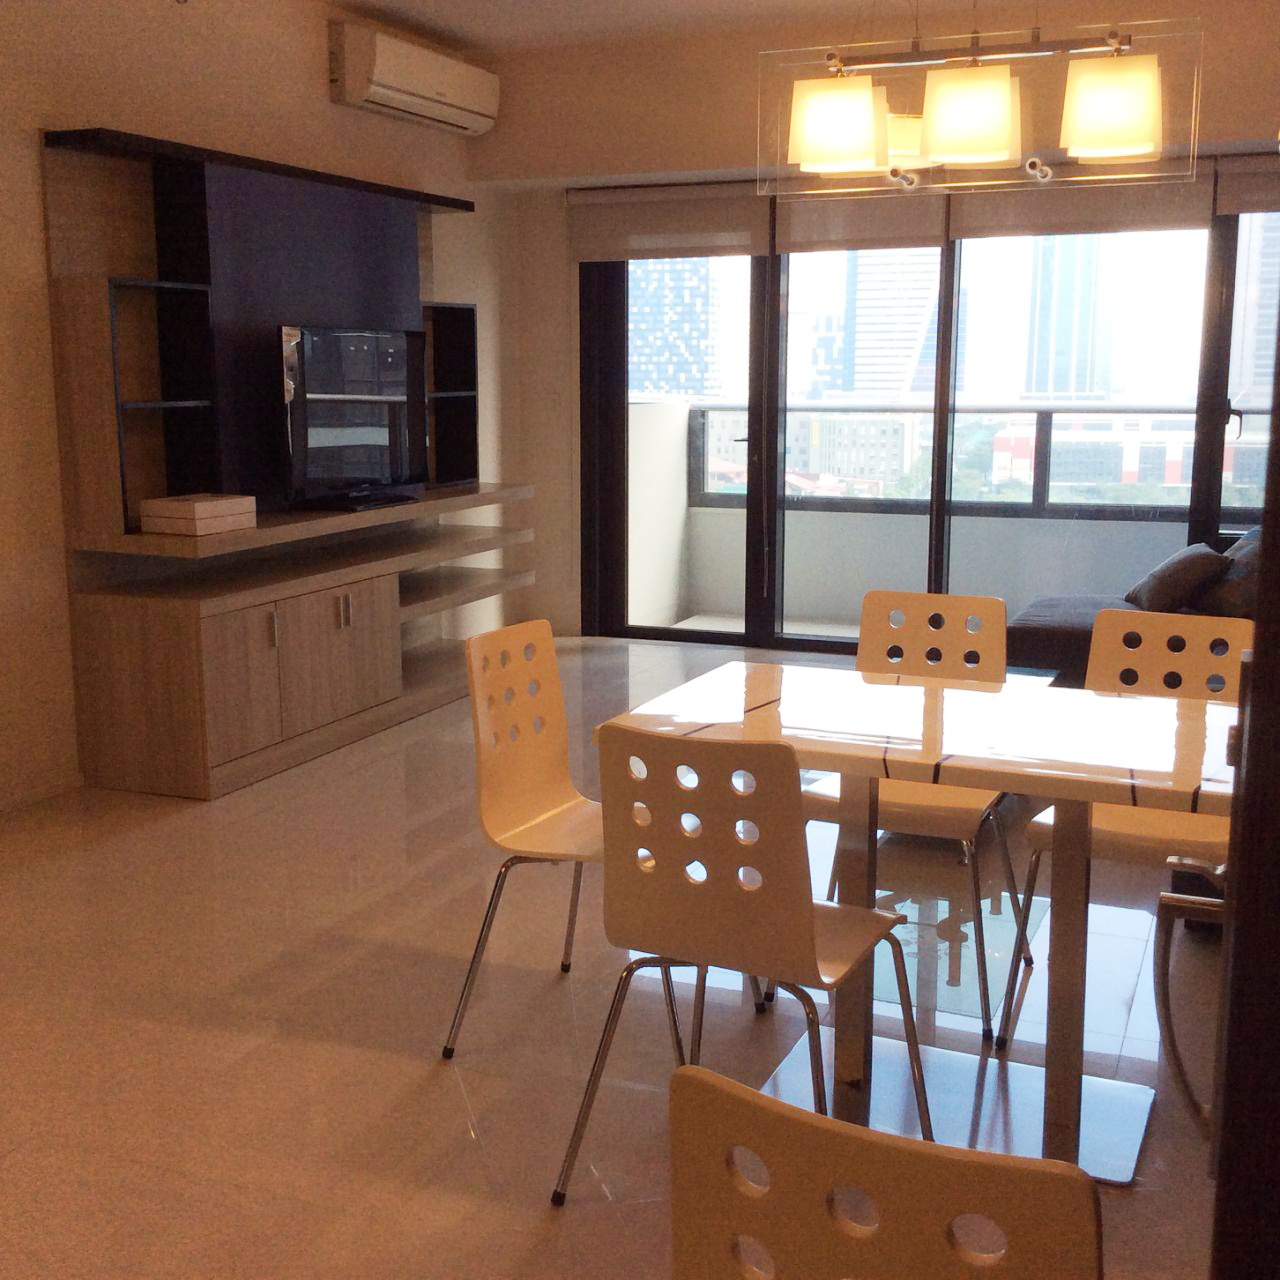 Condo Com Rent: One Bedroom Fully Furnished Condo For Rent At Arya